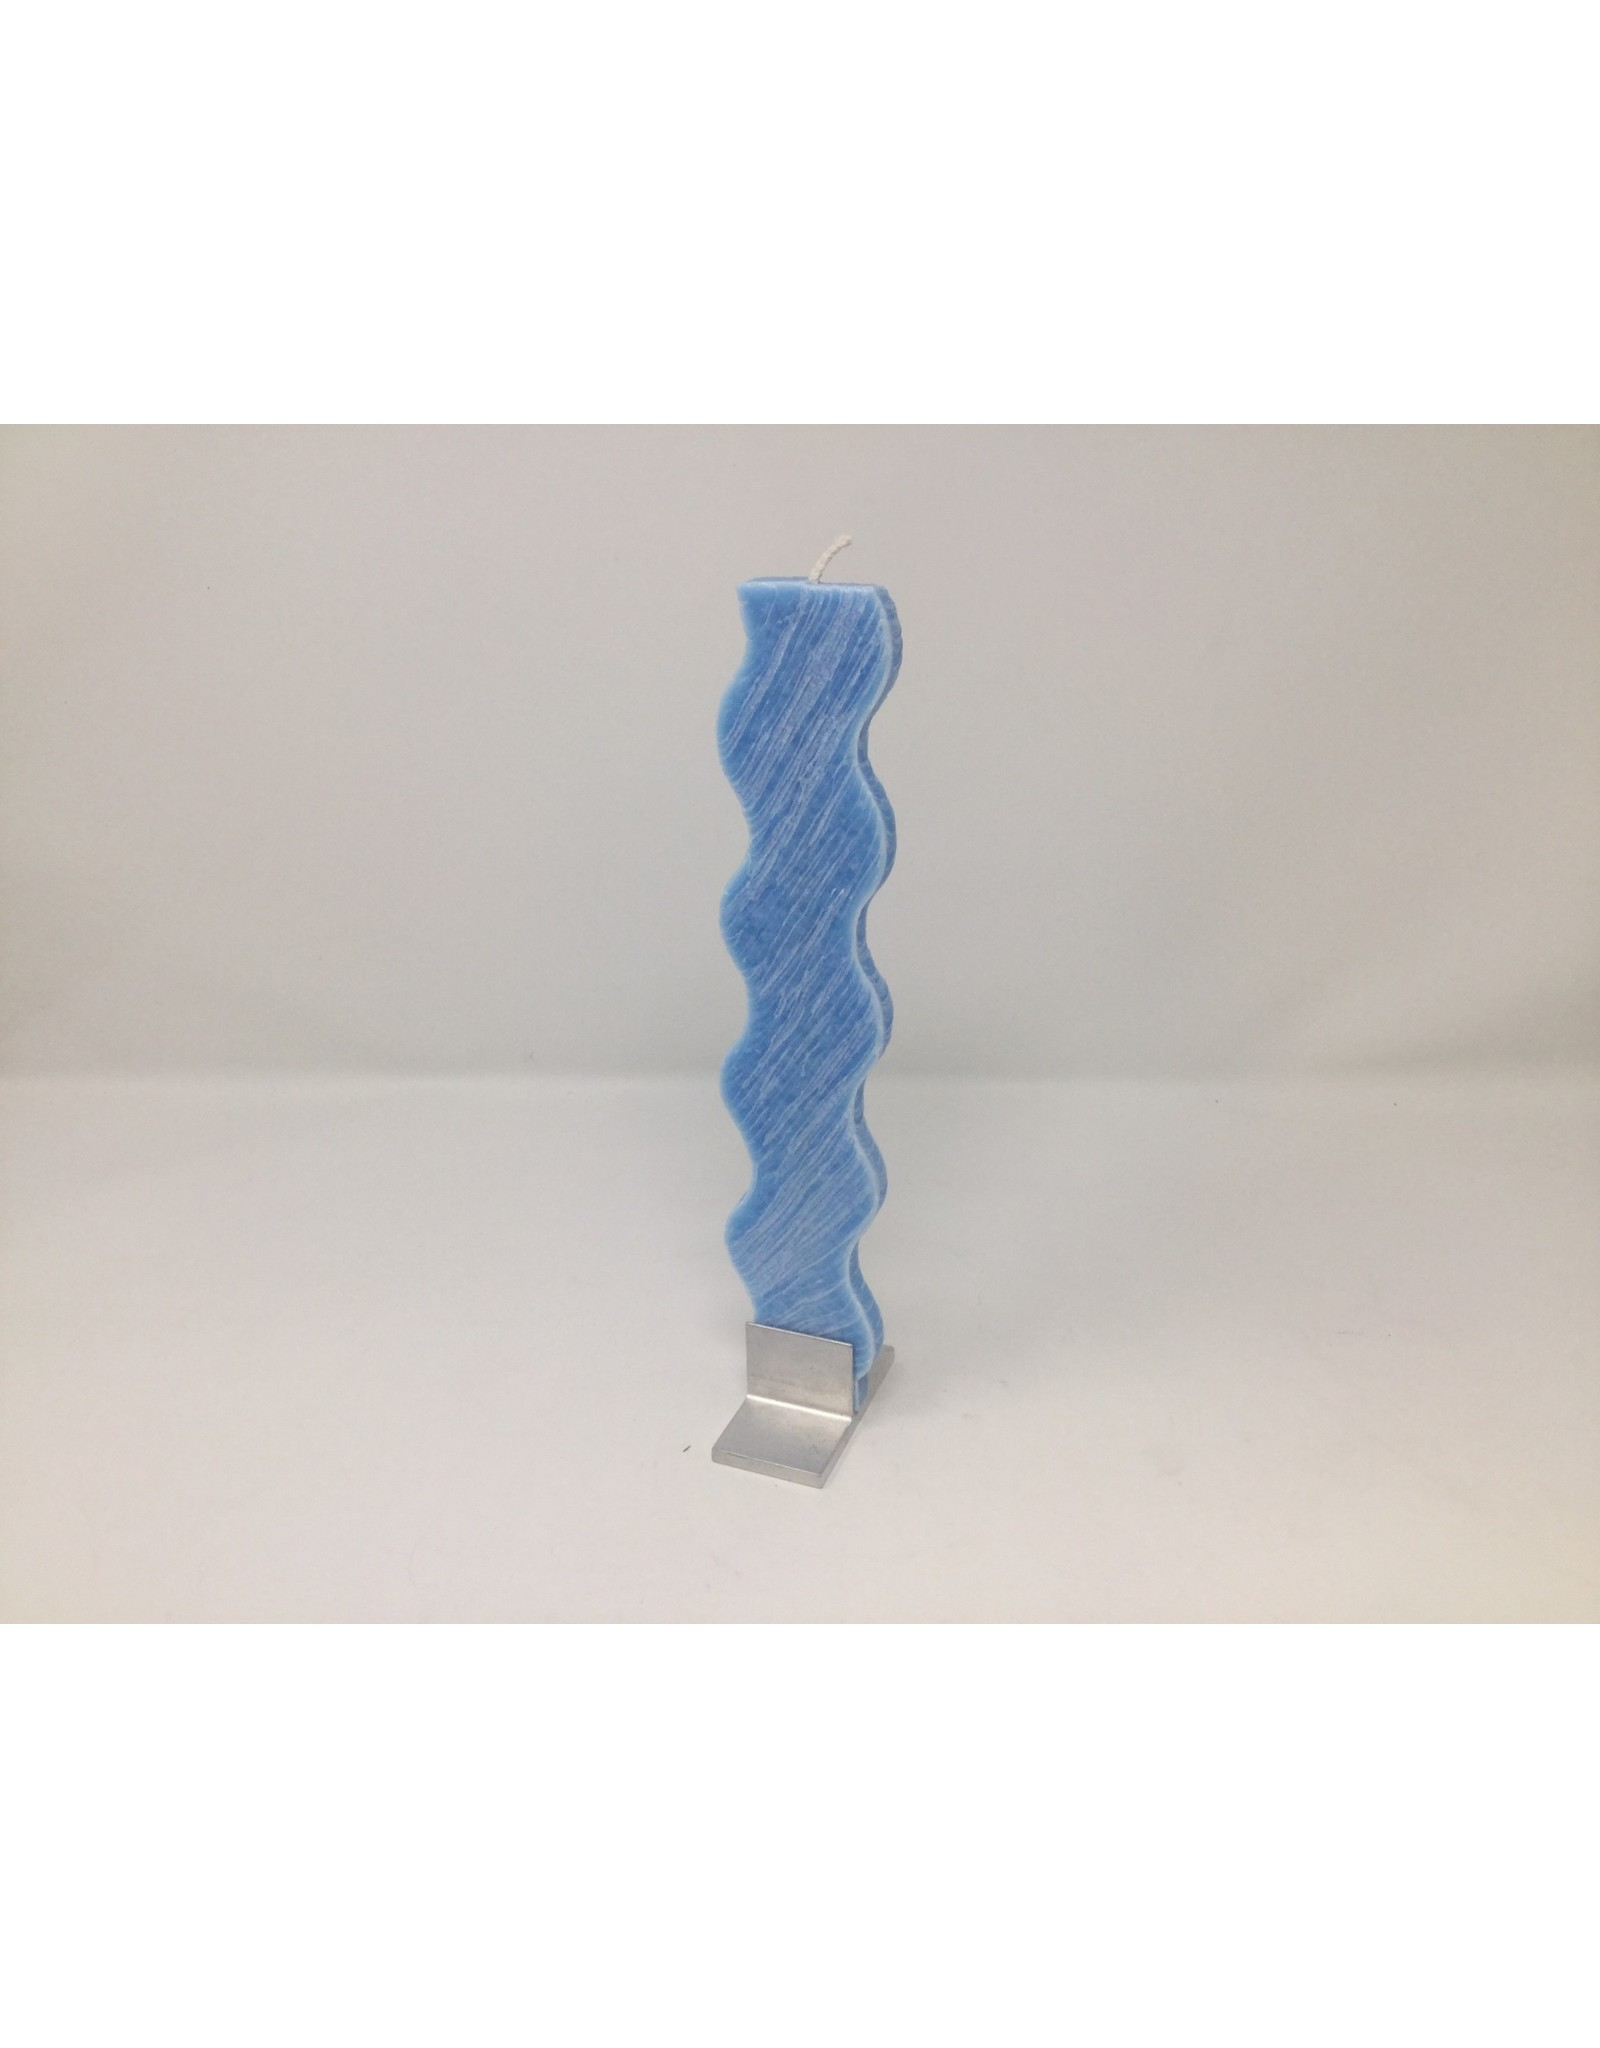 163307-10 Light Blue Rippled Candle